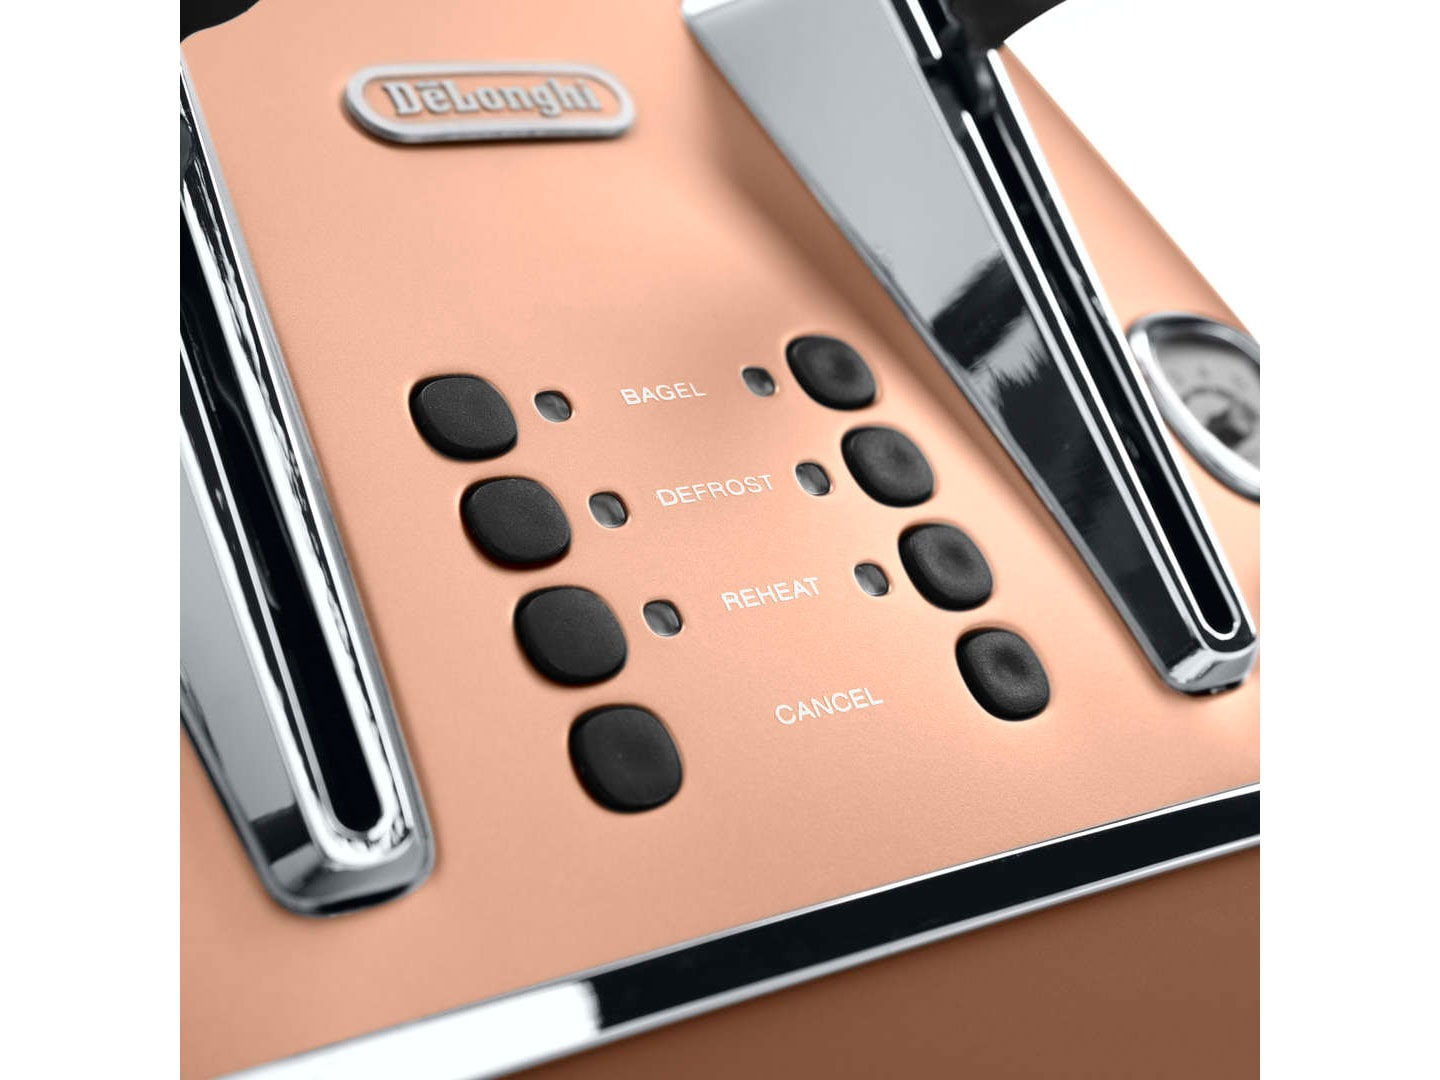 Clearance Stock: Distinta 4 slice toaster - Style Copper - CTI 4003.CP